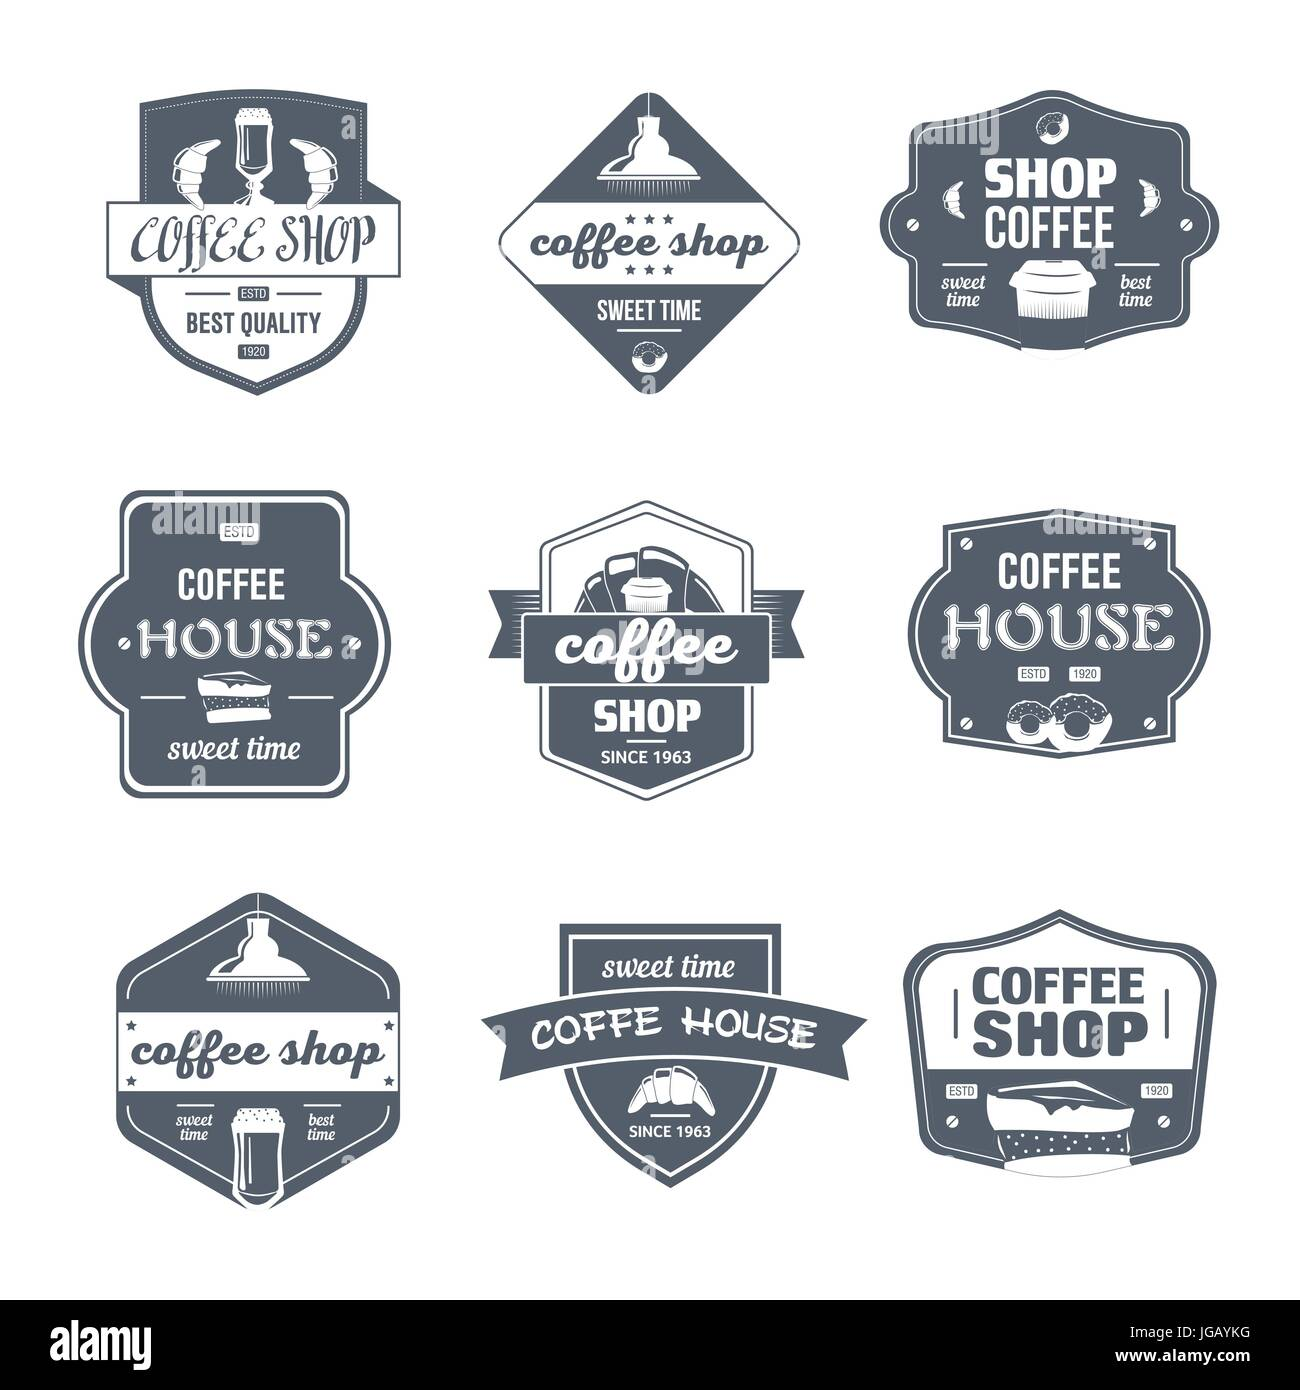 coffee house vector set of vintage template logo insignias old